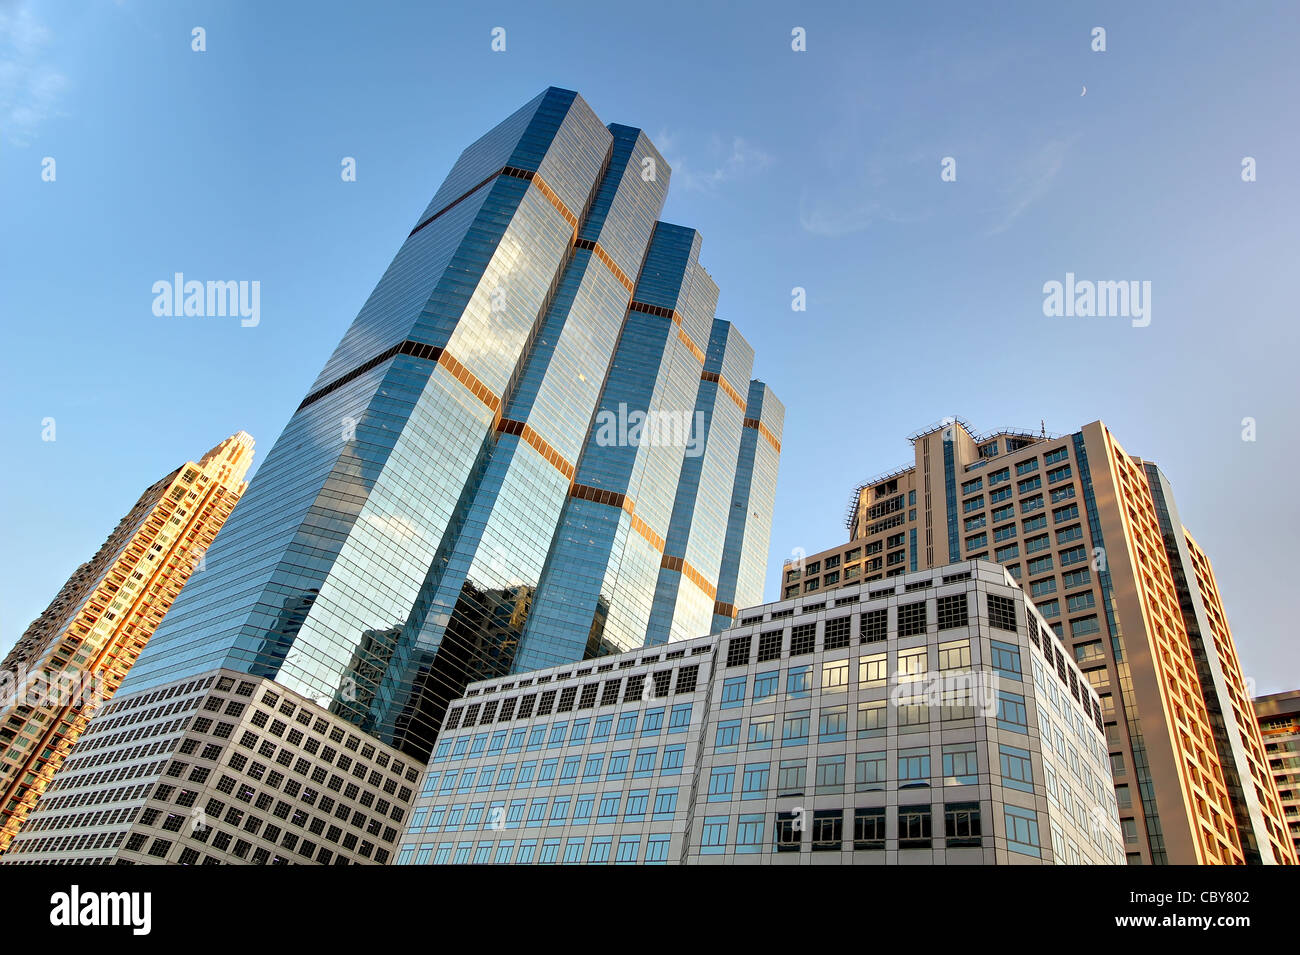 Tightly packed towers (Empire Tower in Center) in Bangkok's Sathorn Road business & financial district. - Stock Image